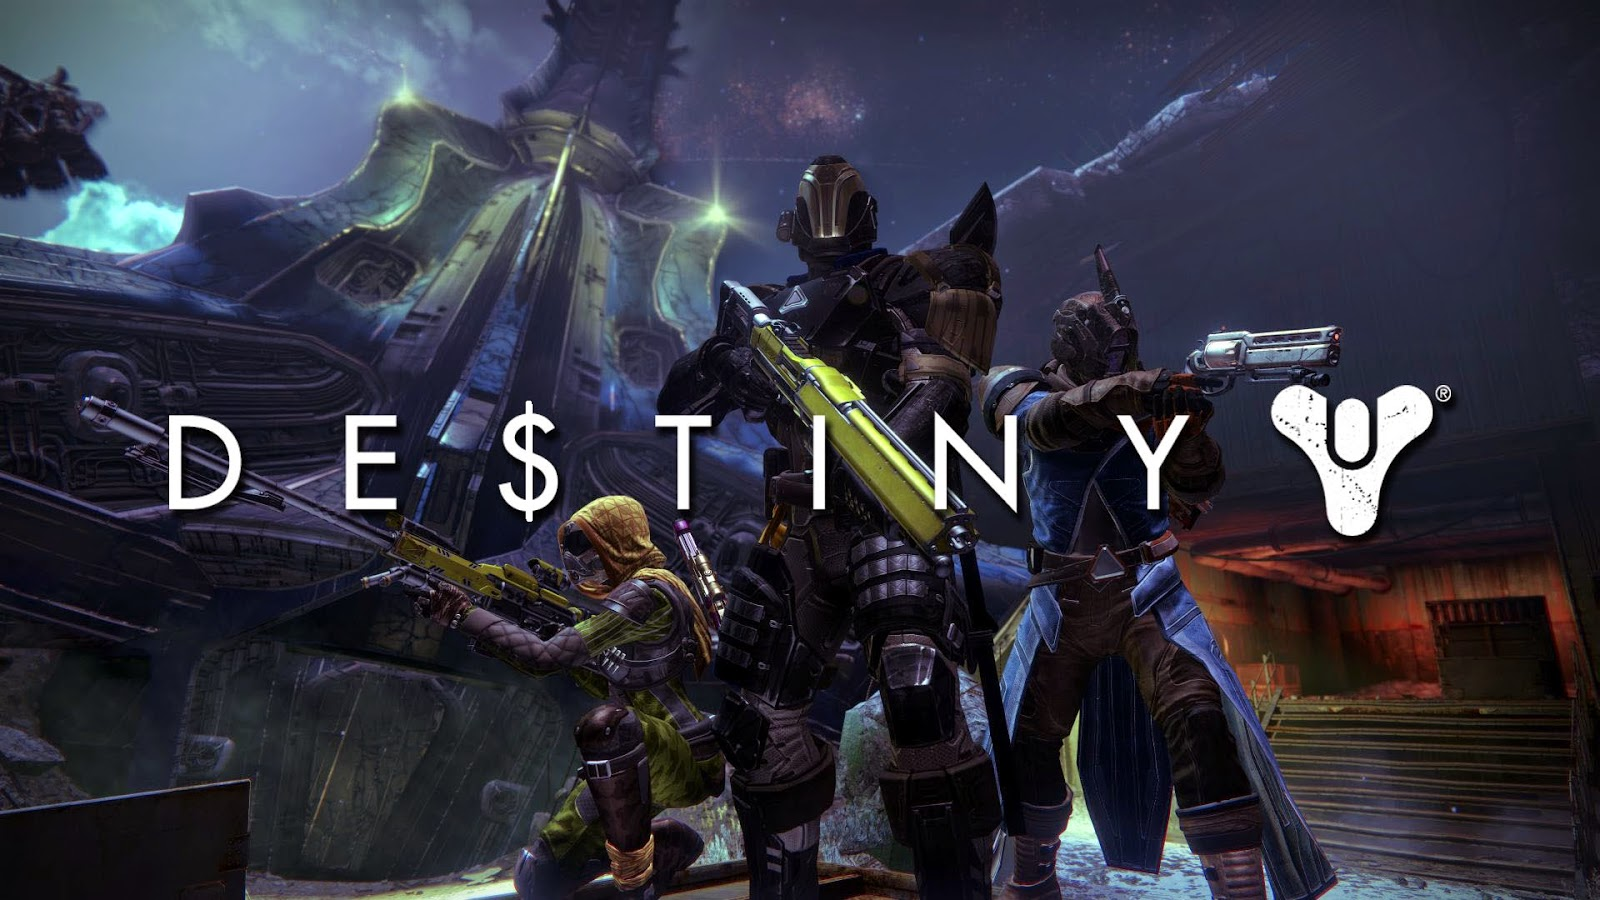 Destiny Crosses $500 Million On Day One